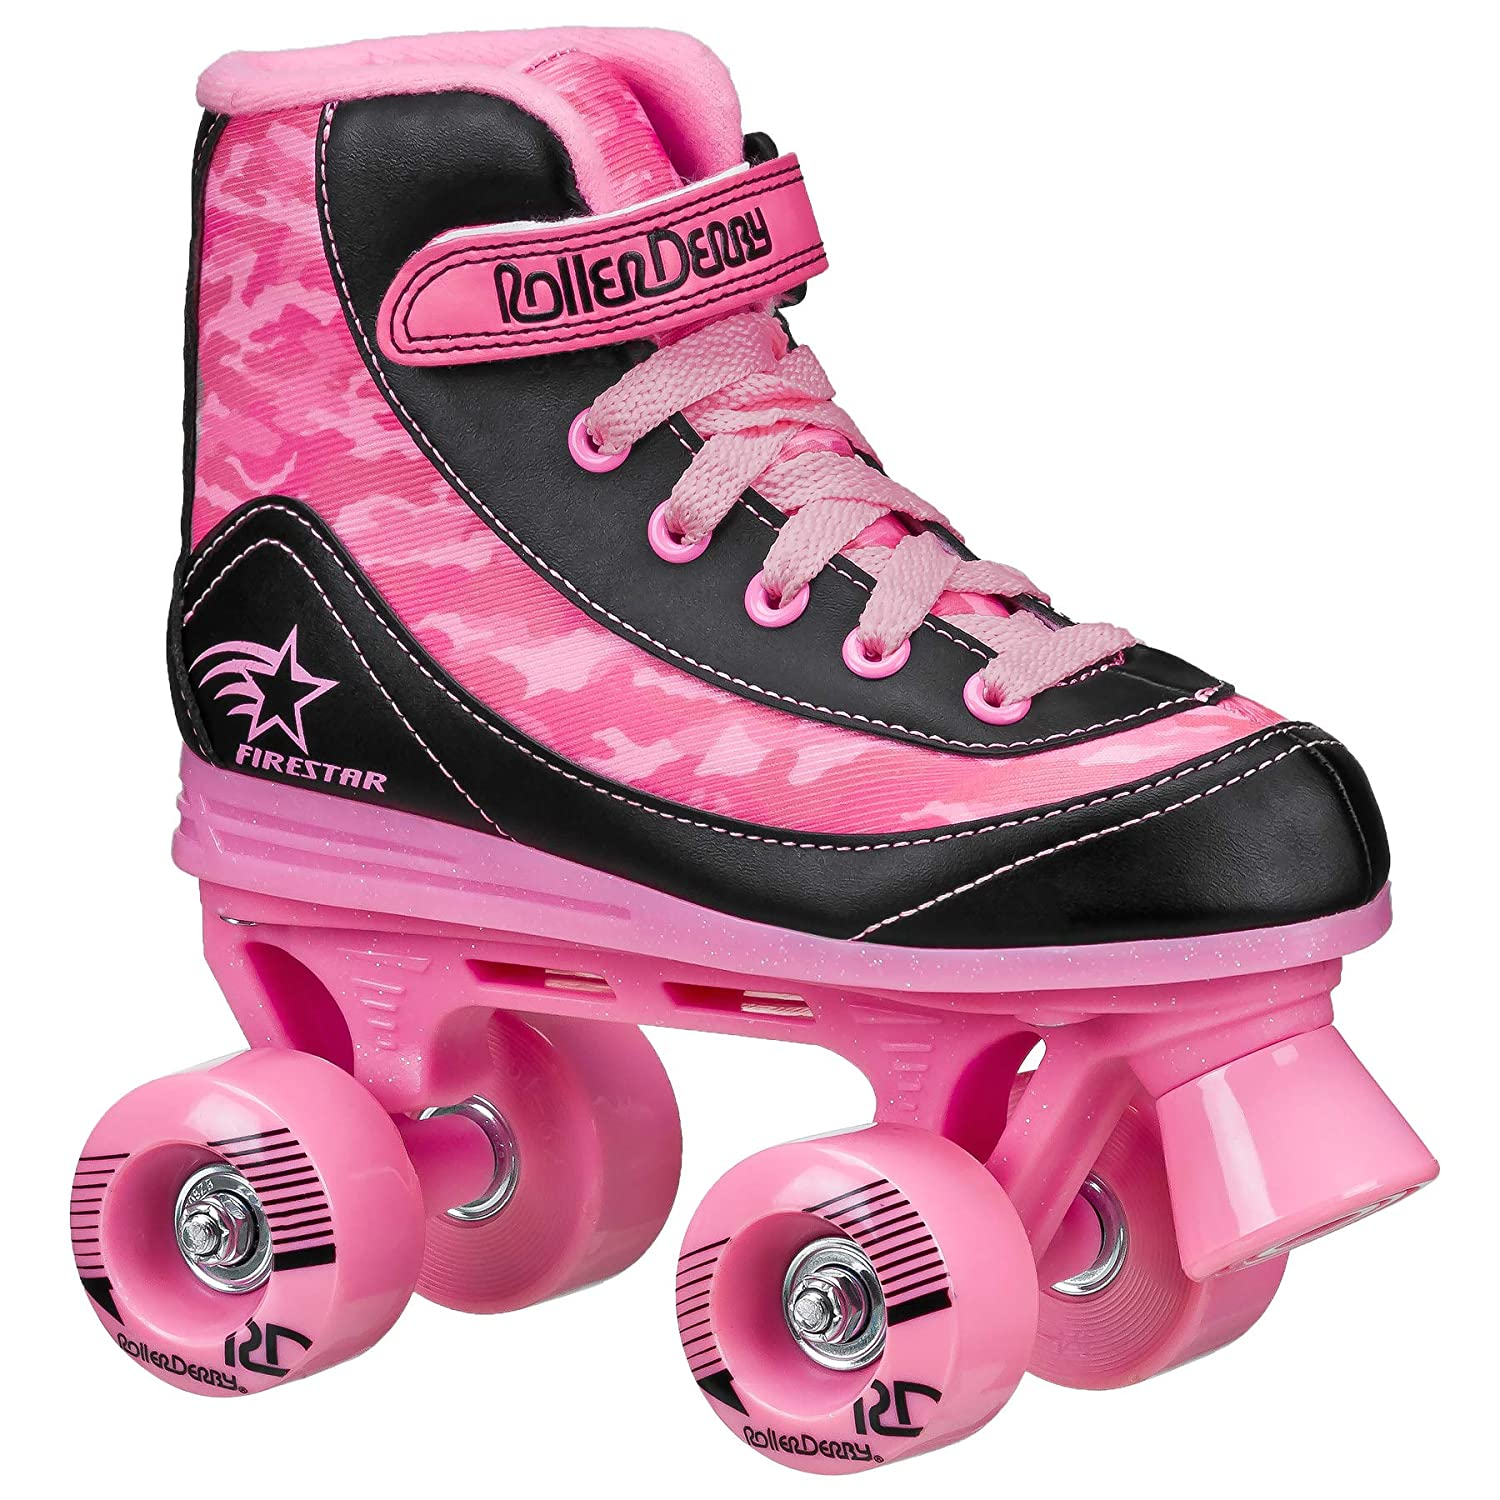 Top 10 Best Roller Skates (2020 Reviews & Buying Guide) 2